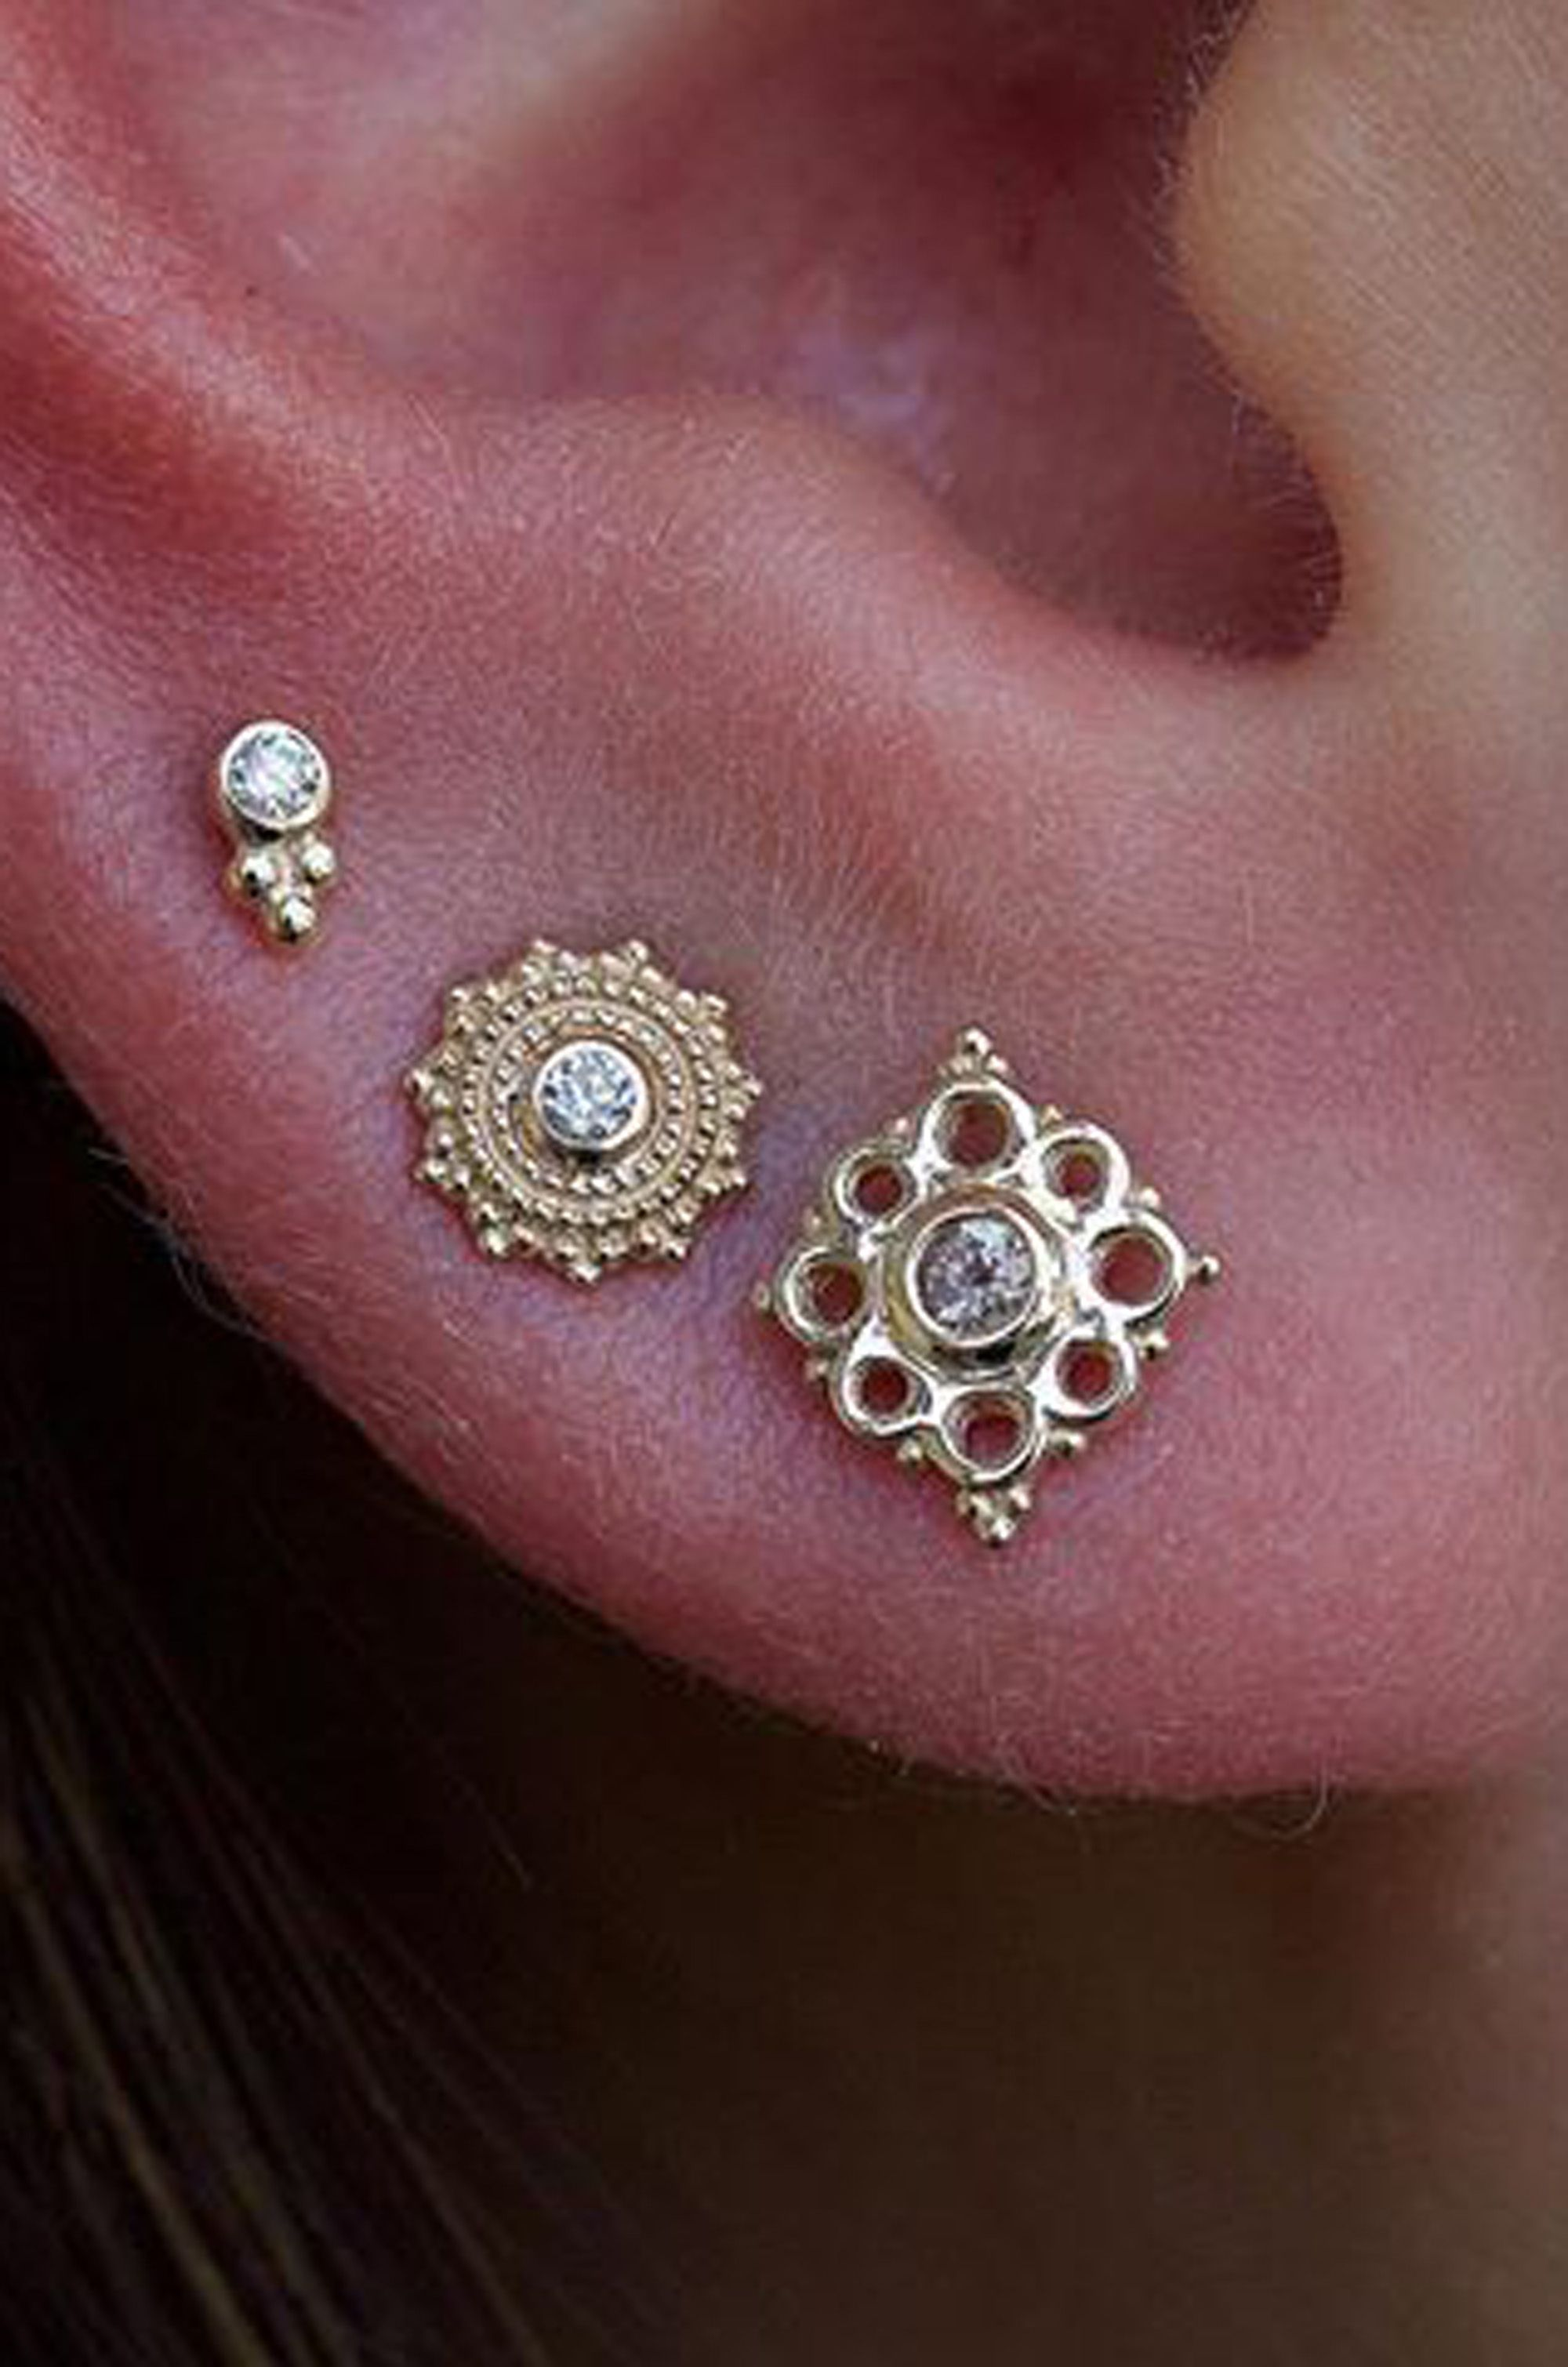 Nose piercing through the middle  Elowen Boho Small Crystal Stud Ear Piercing Earrings in Gold or